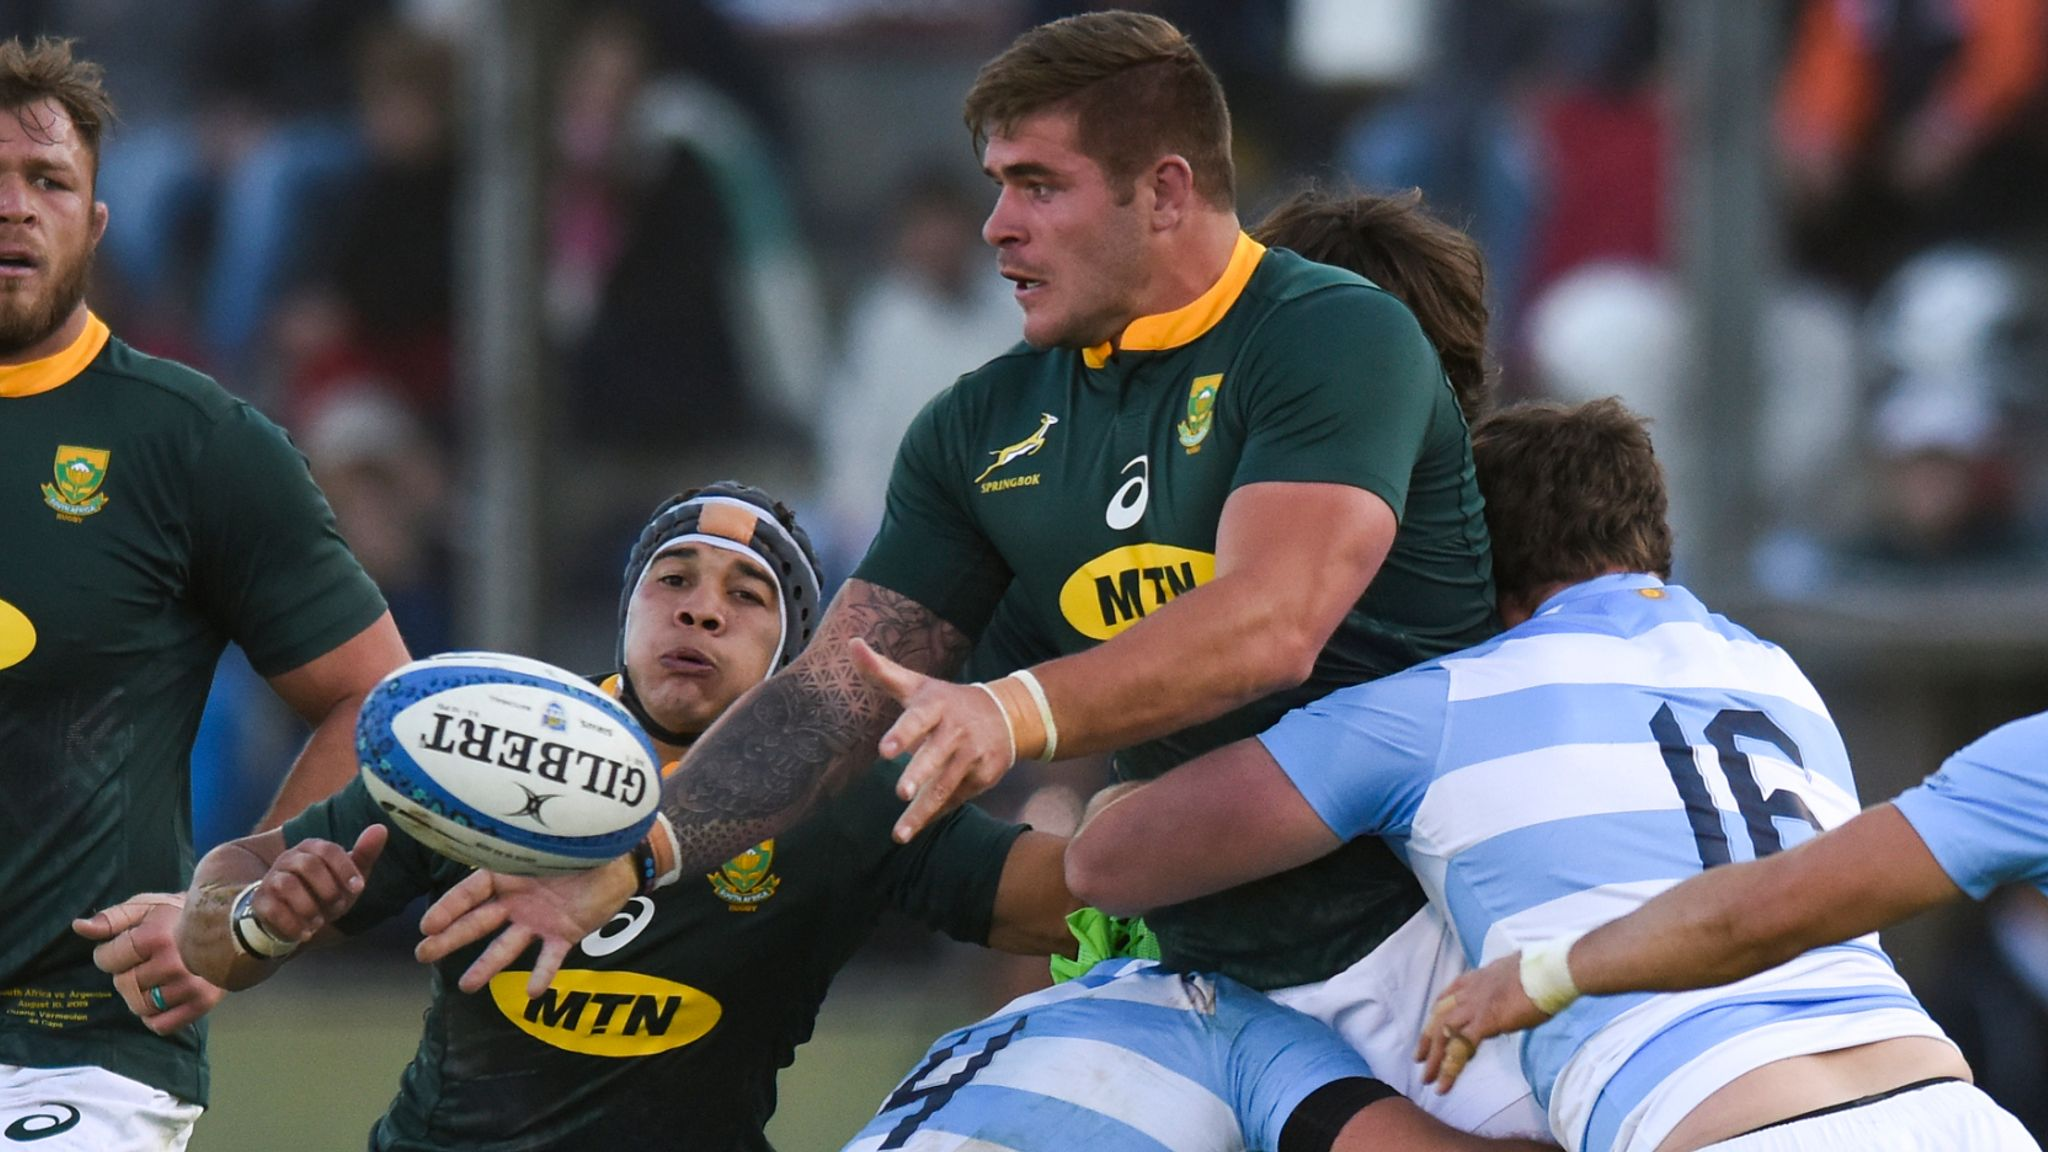 South Africa withdrawn from Rugby Championship - Sports Leo